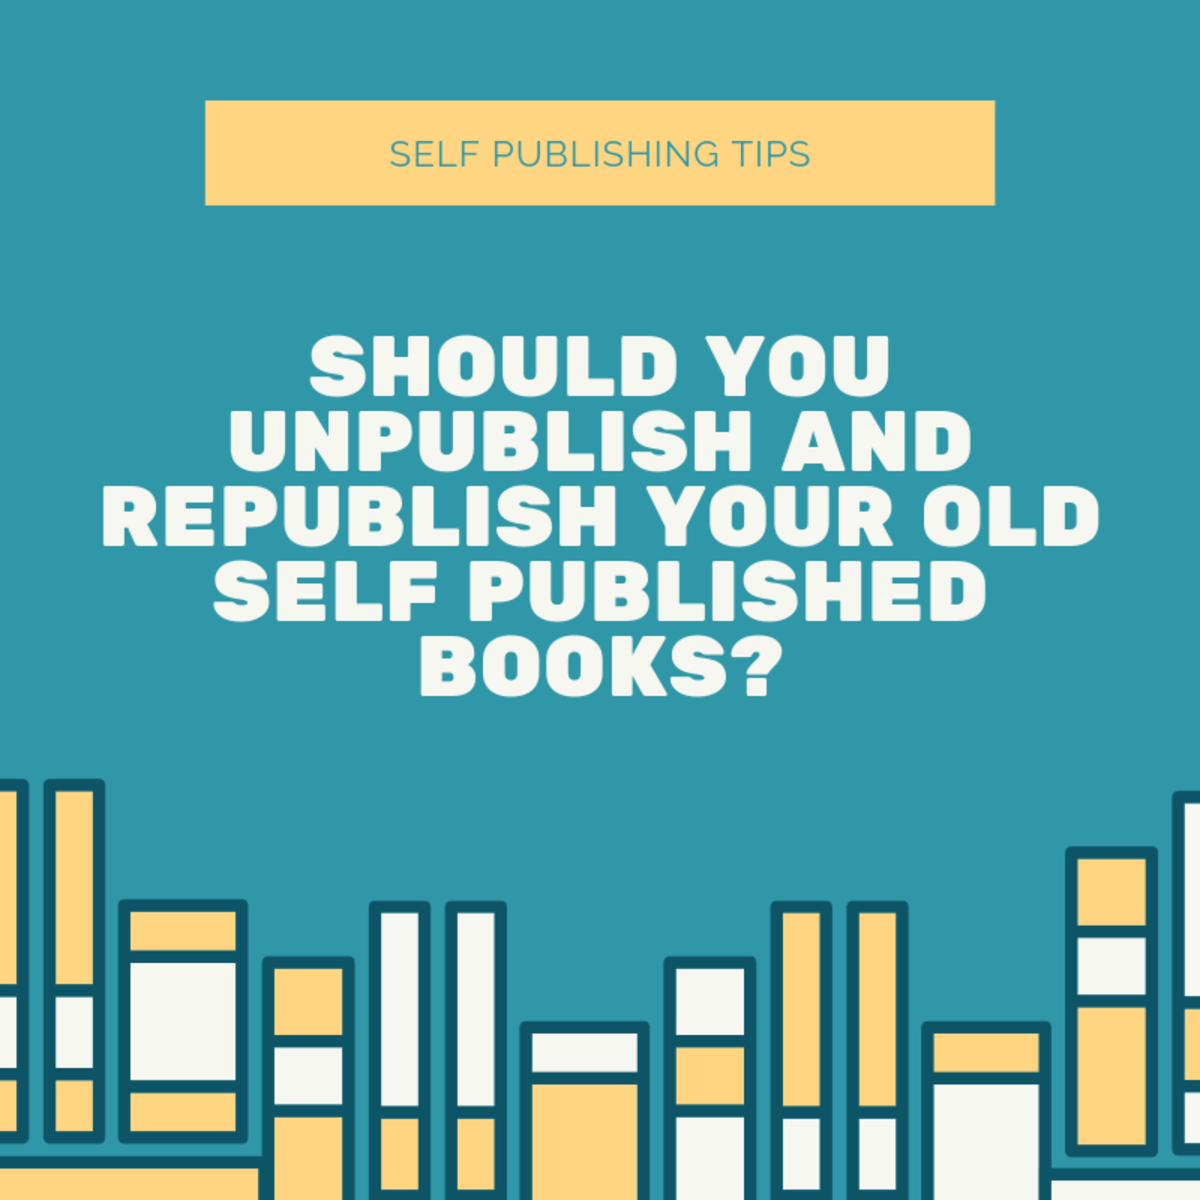 Should You Unpublish and Republish Your Old Self Published Books?